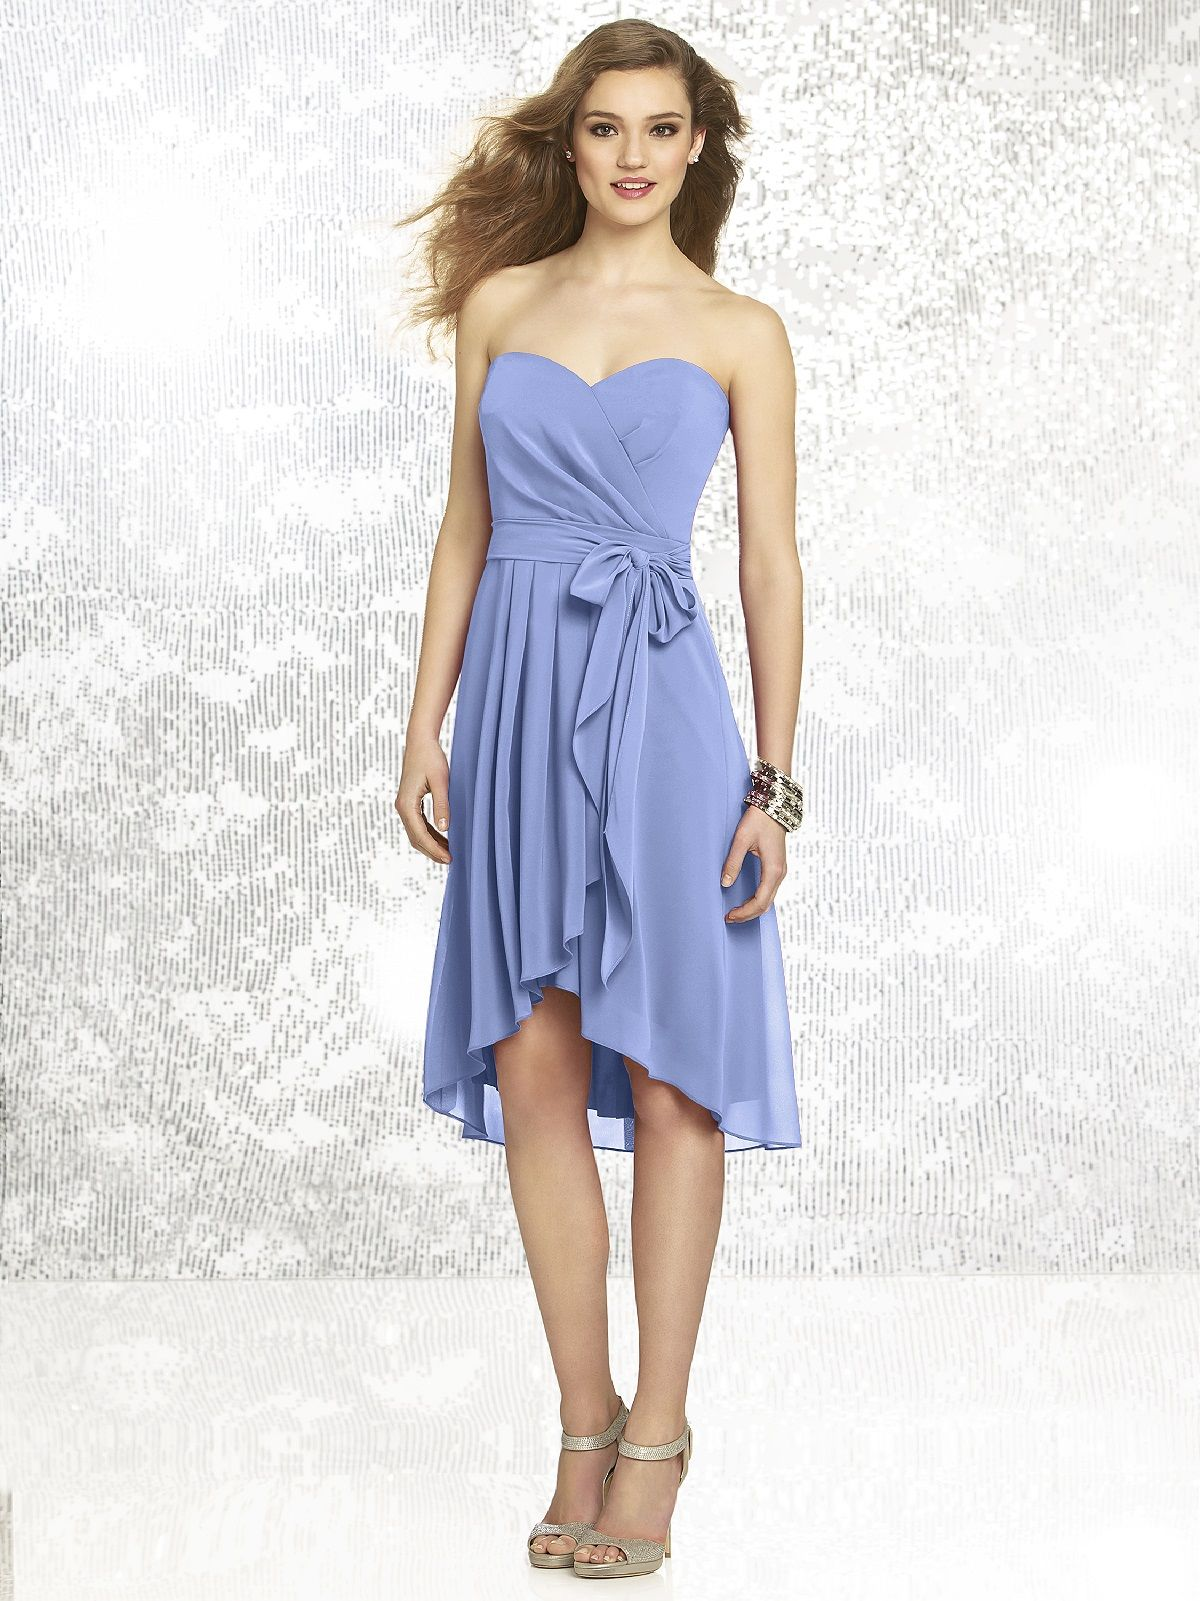 Social bridesmaids style 8131 periwinkle bridesmaid dresses periwinkle bridesmaid dress ombrellifo Choice Image